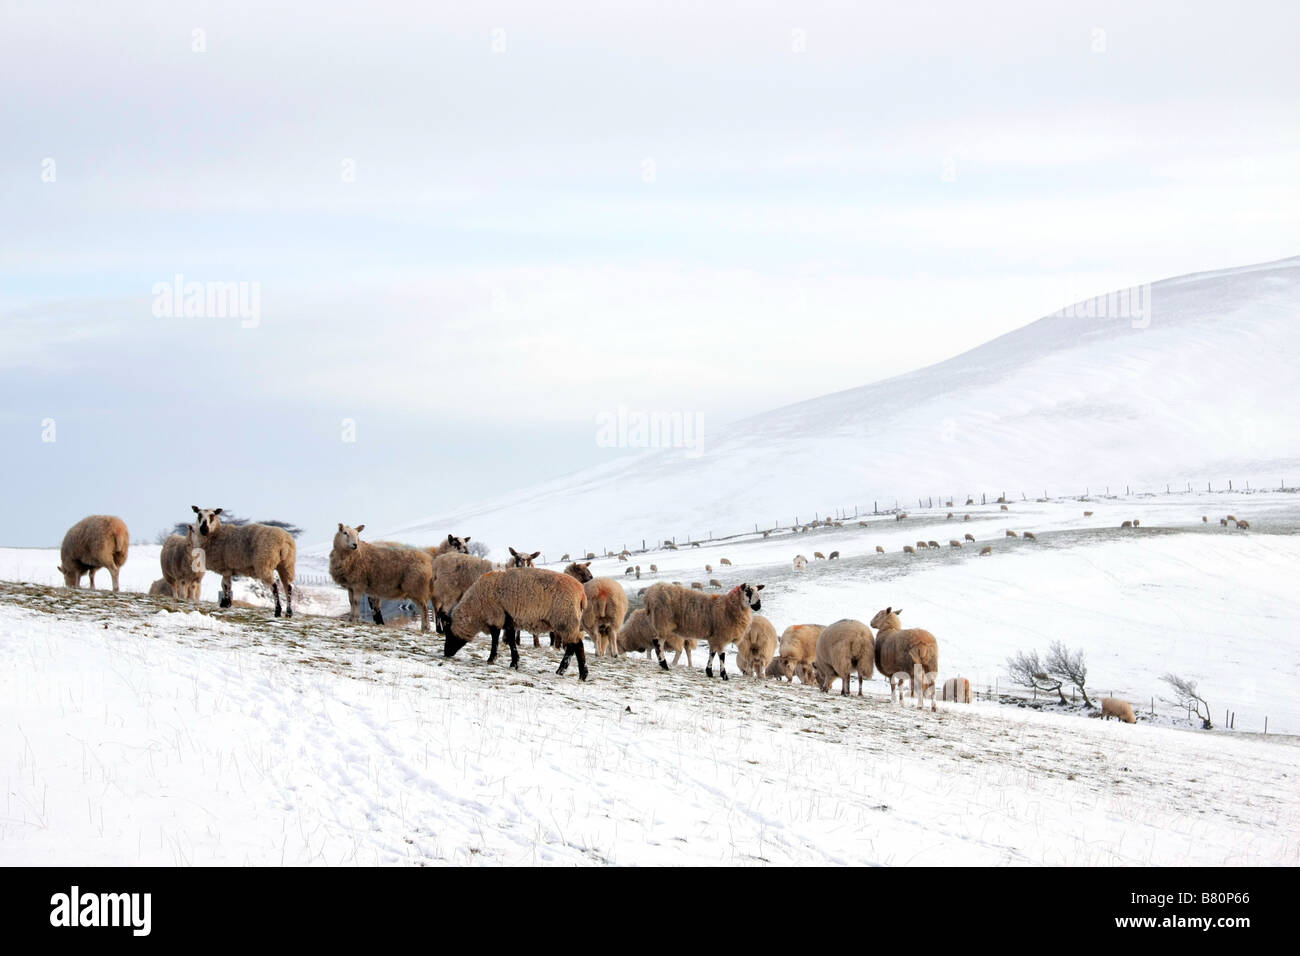 Sheep on a snowy welsh hillside - Stock Image